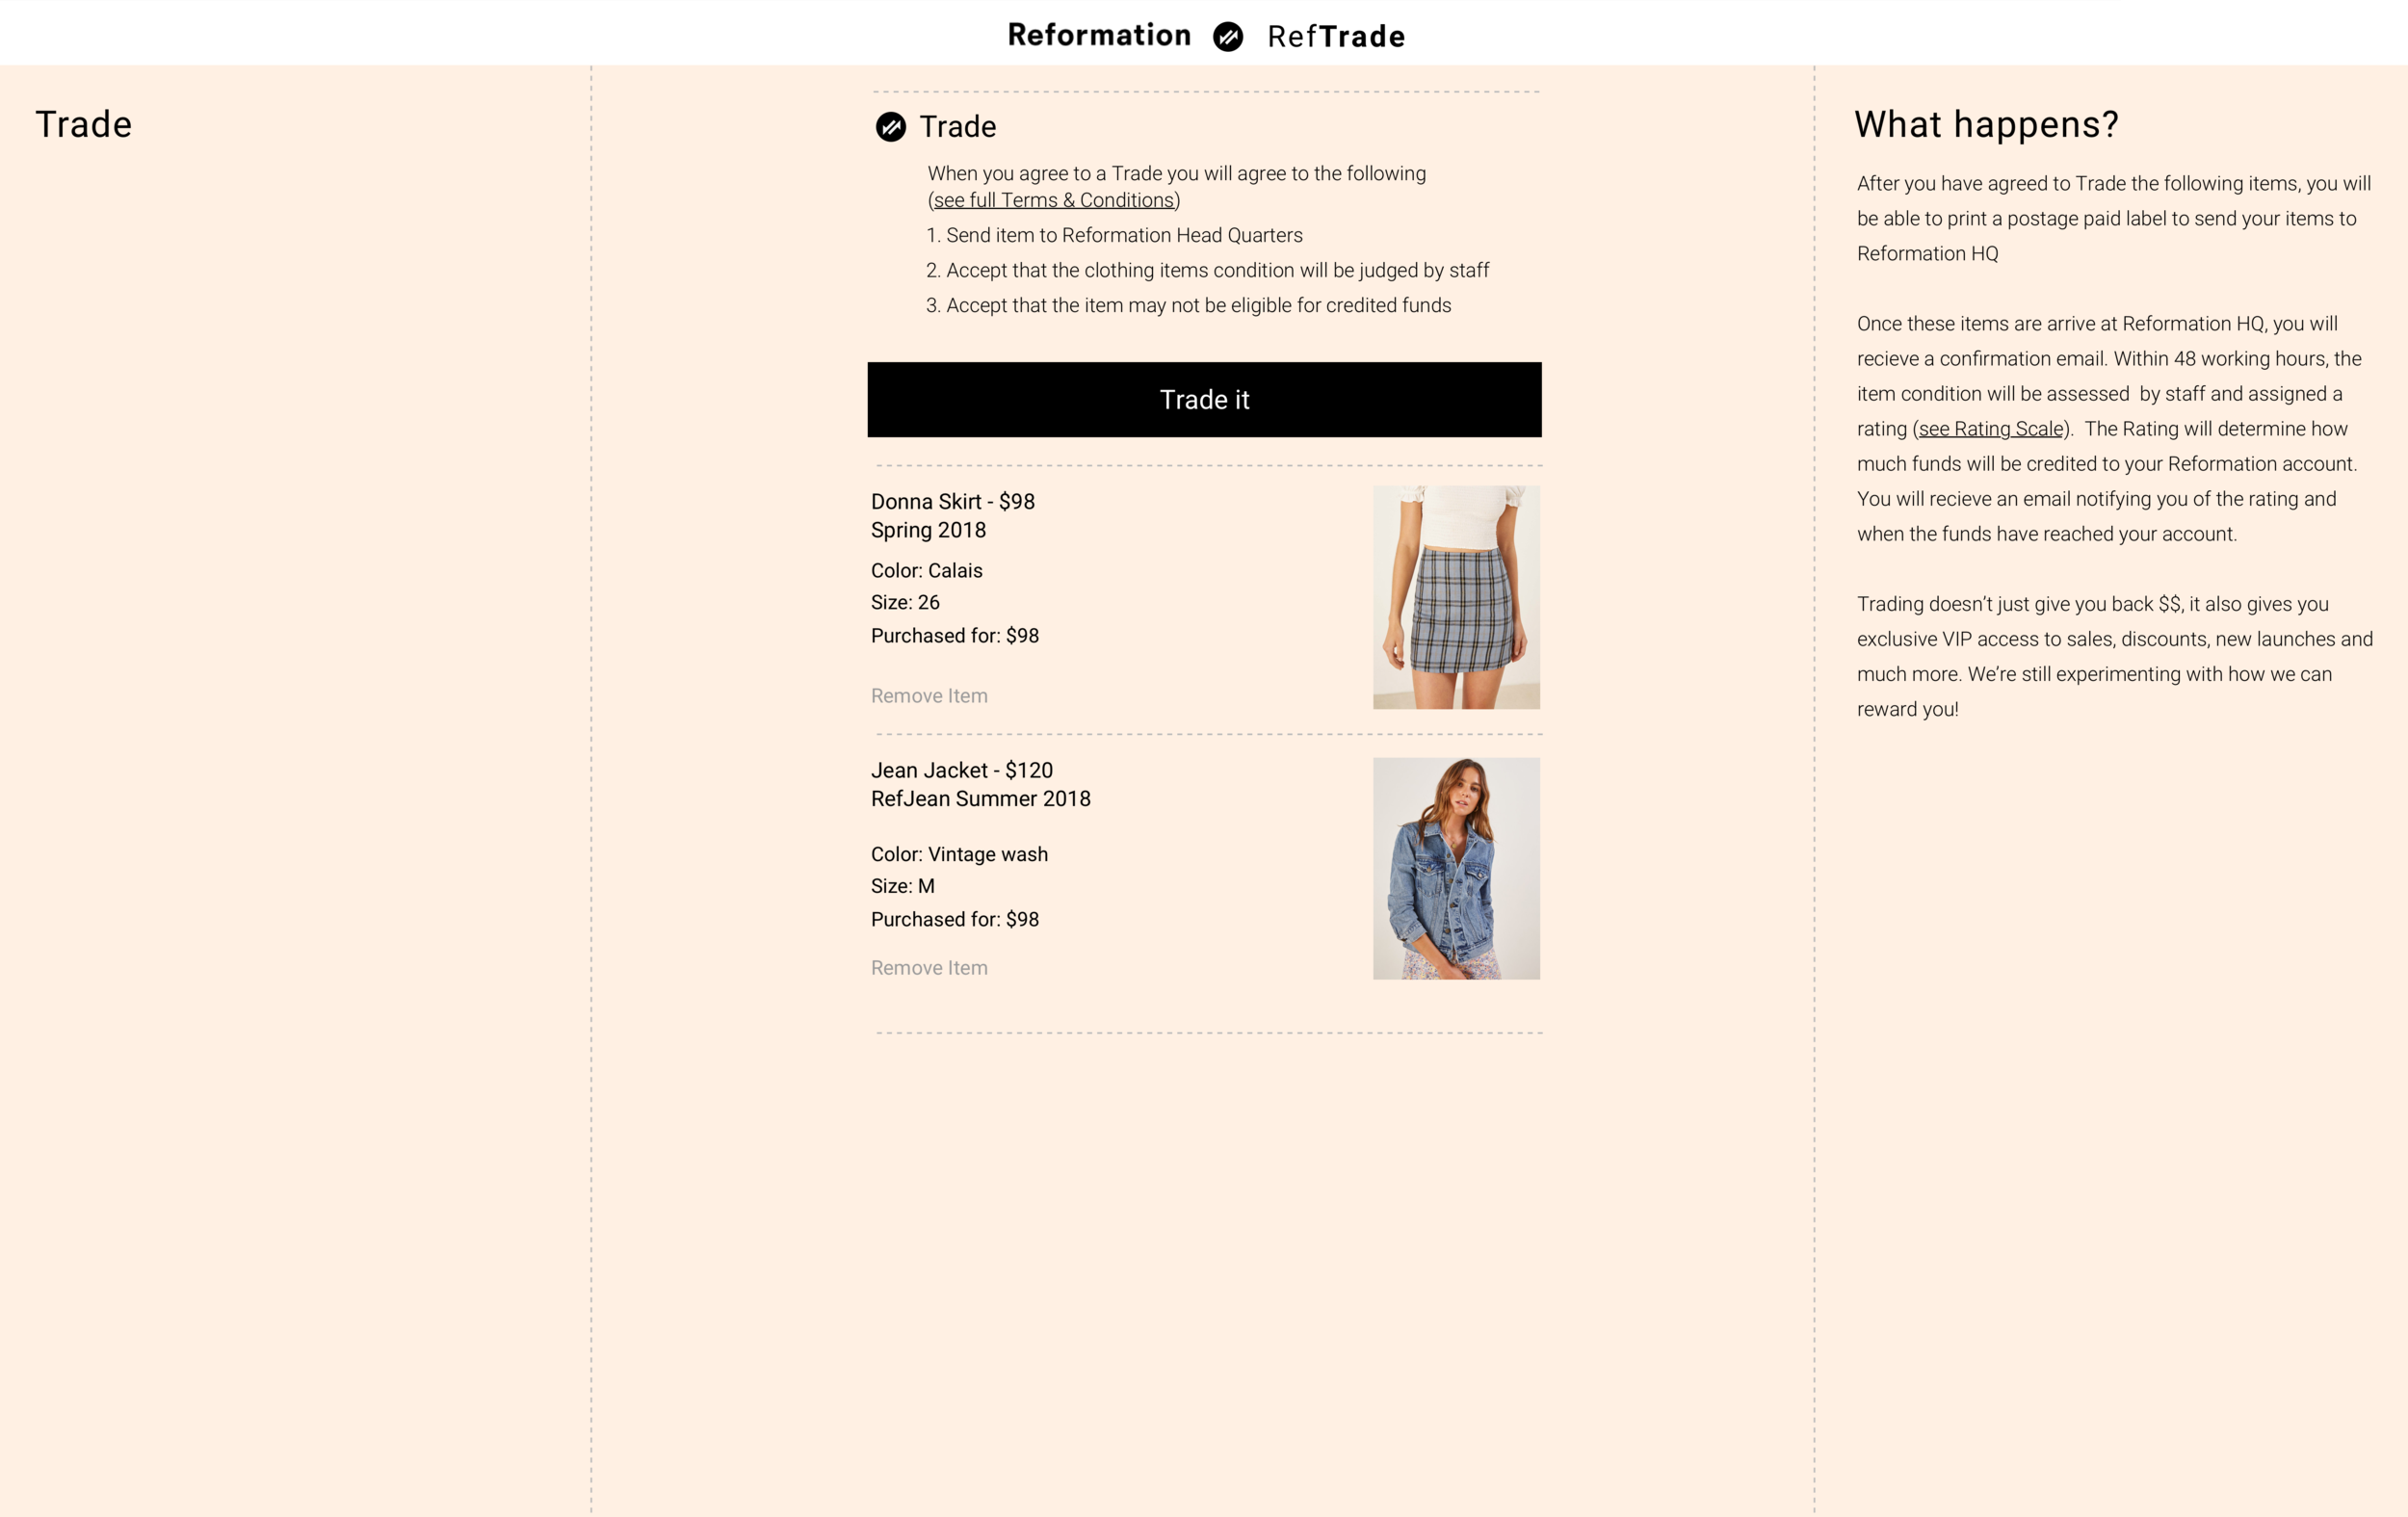 WF03:  Users are taken to a similar experience to shopping however is branded in a slightly different colour. Details of the trade are displayed on the right